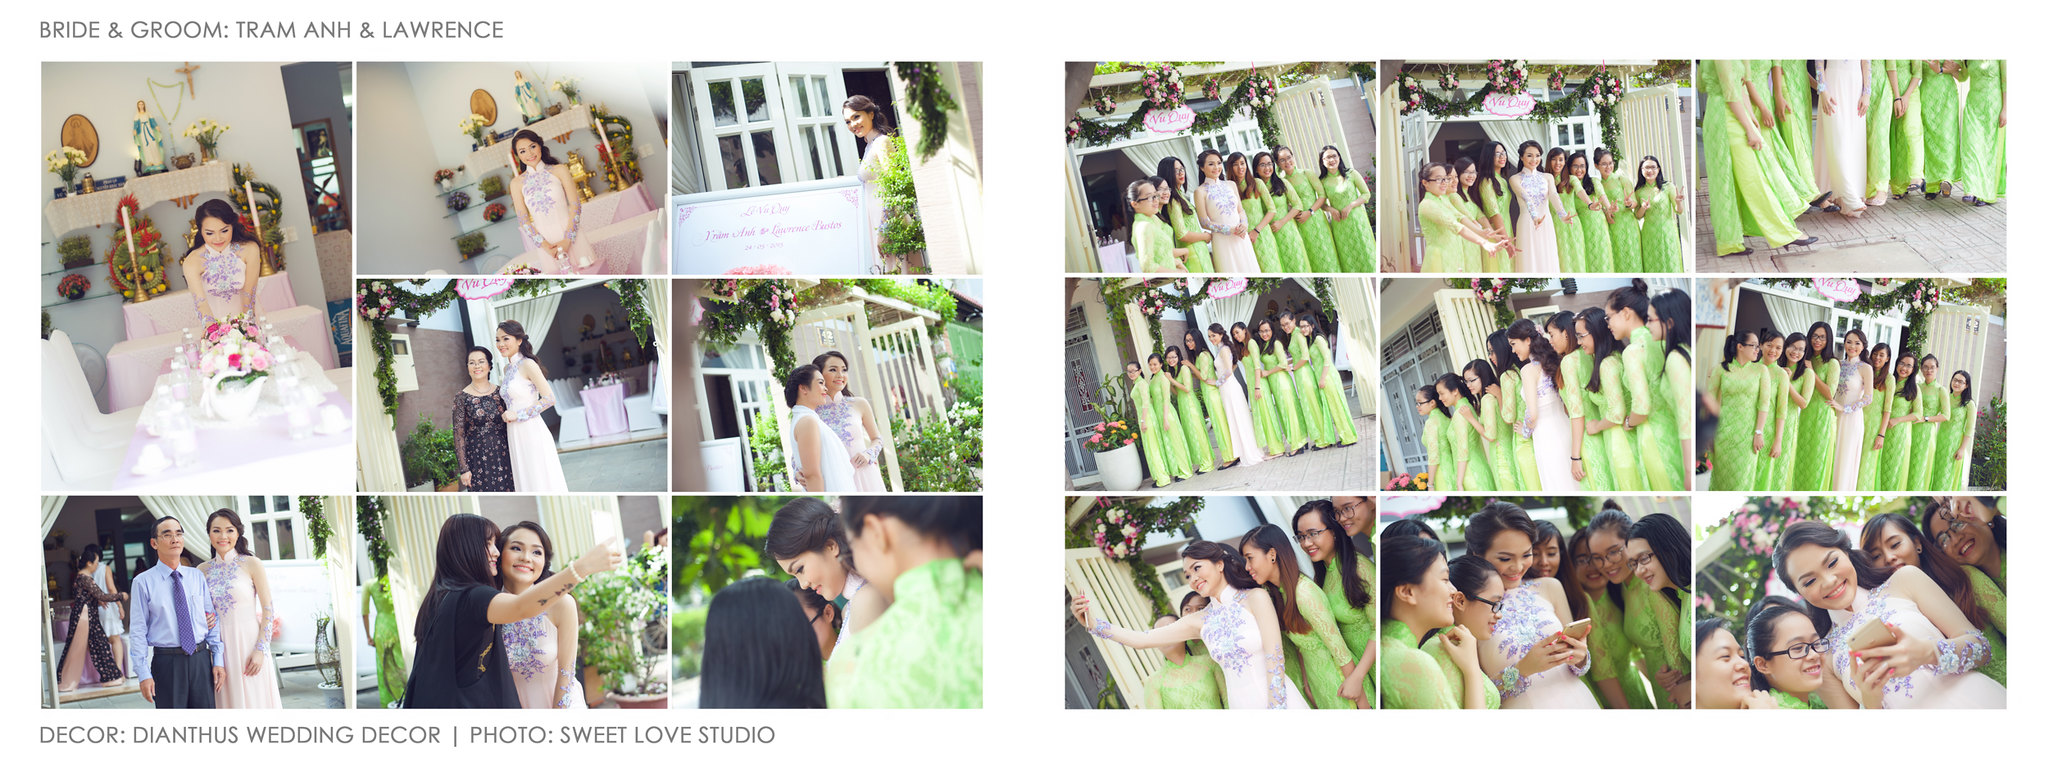 Chup-anh-cuoi-phong-su-Tram-Anh-Lawrence-05